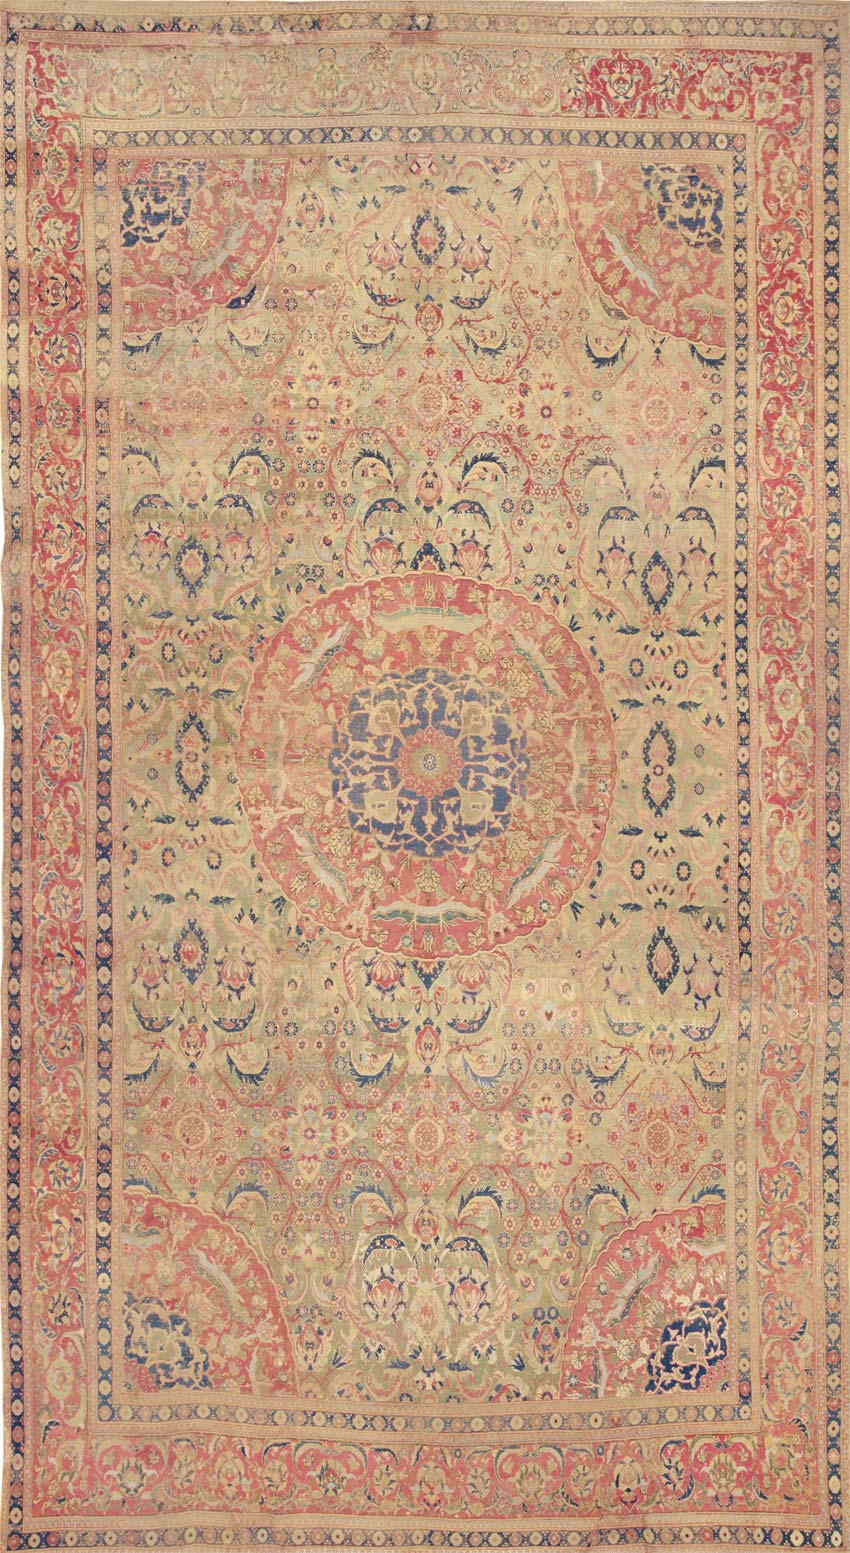 16th Century Cairene Rugs